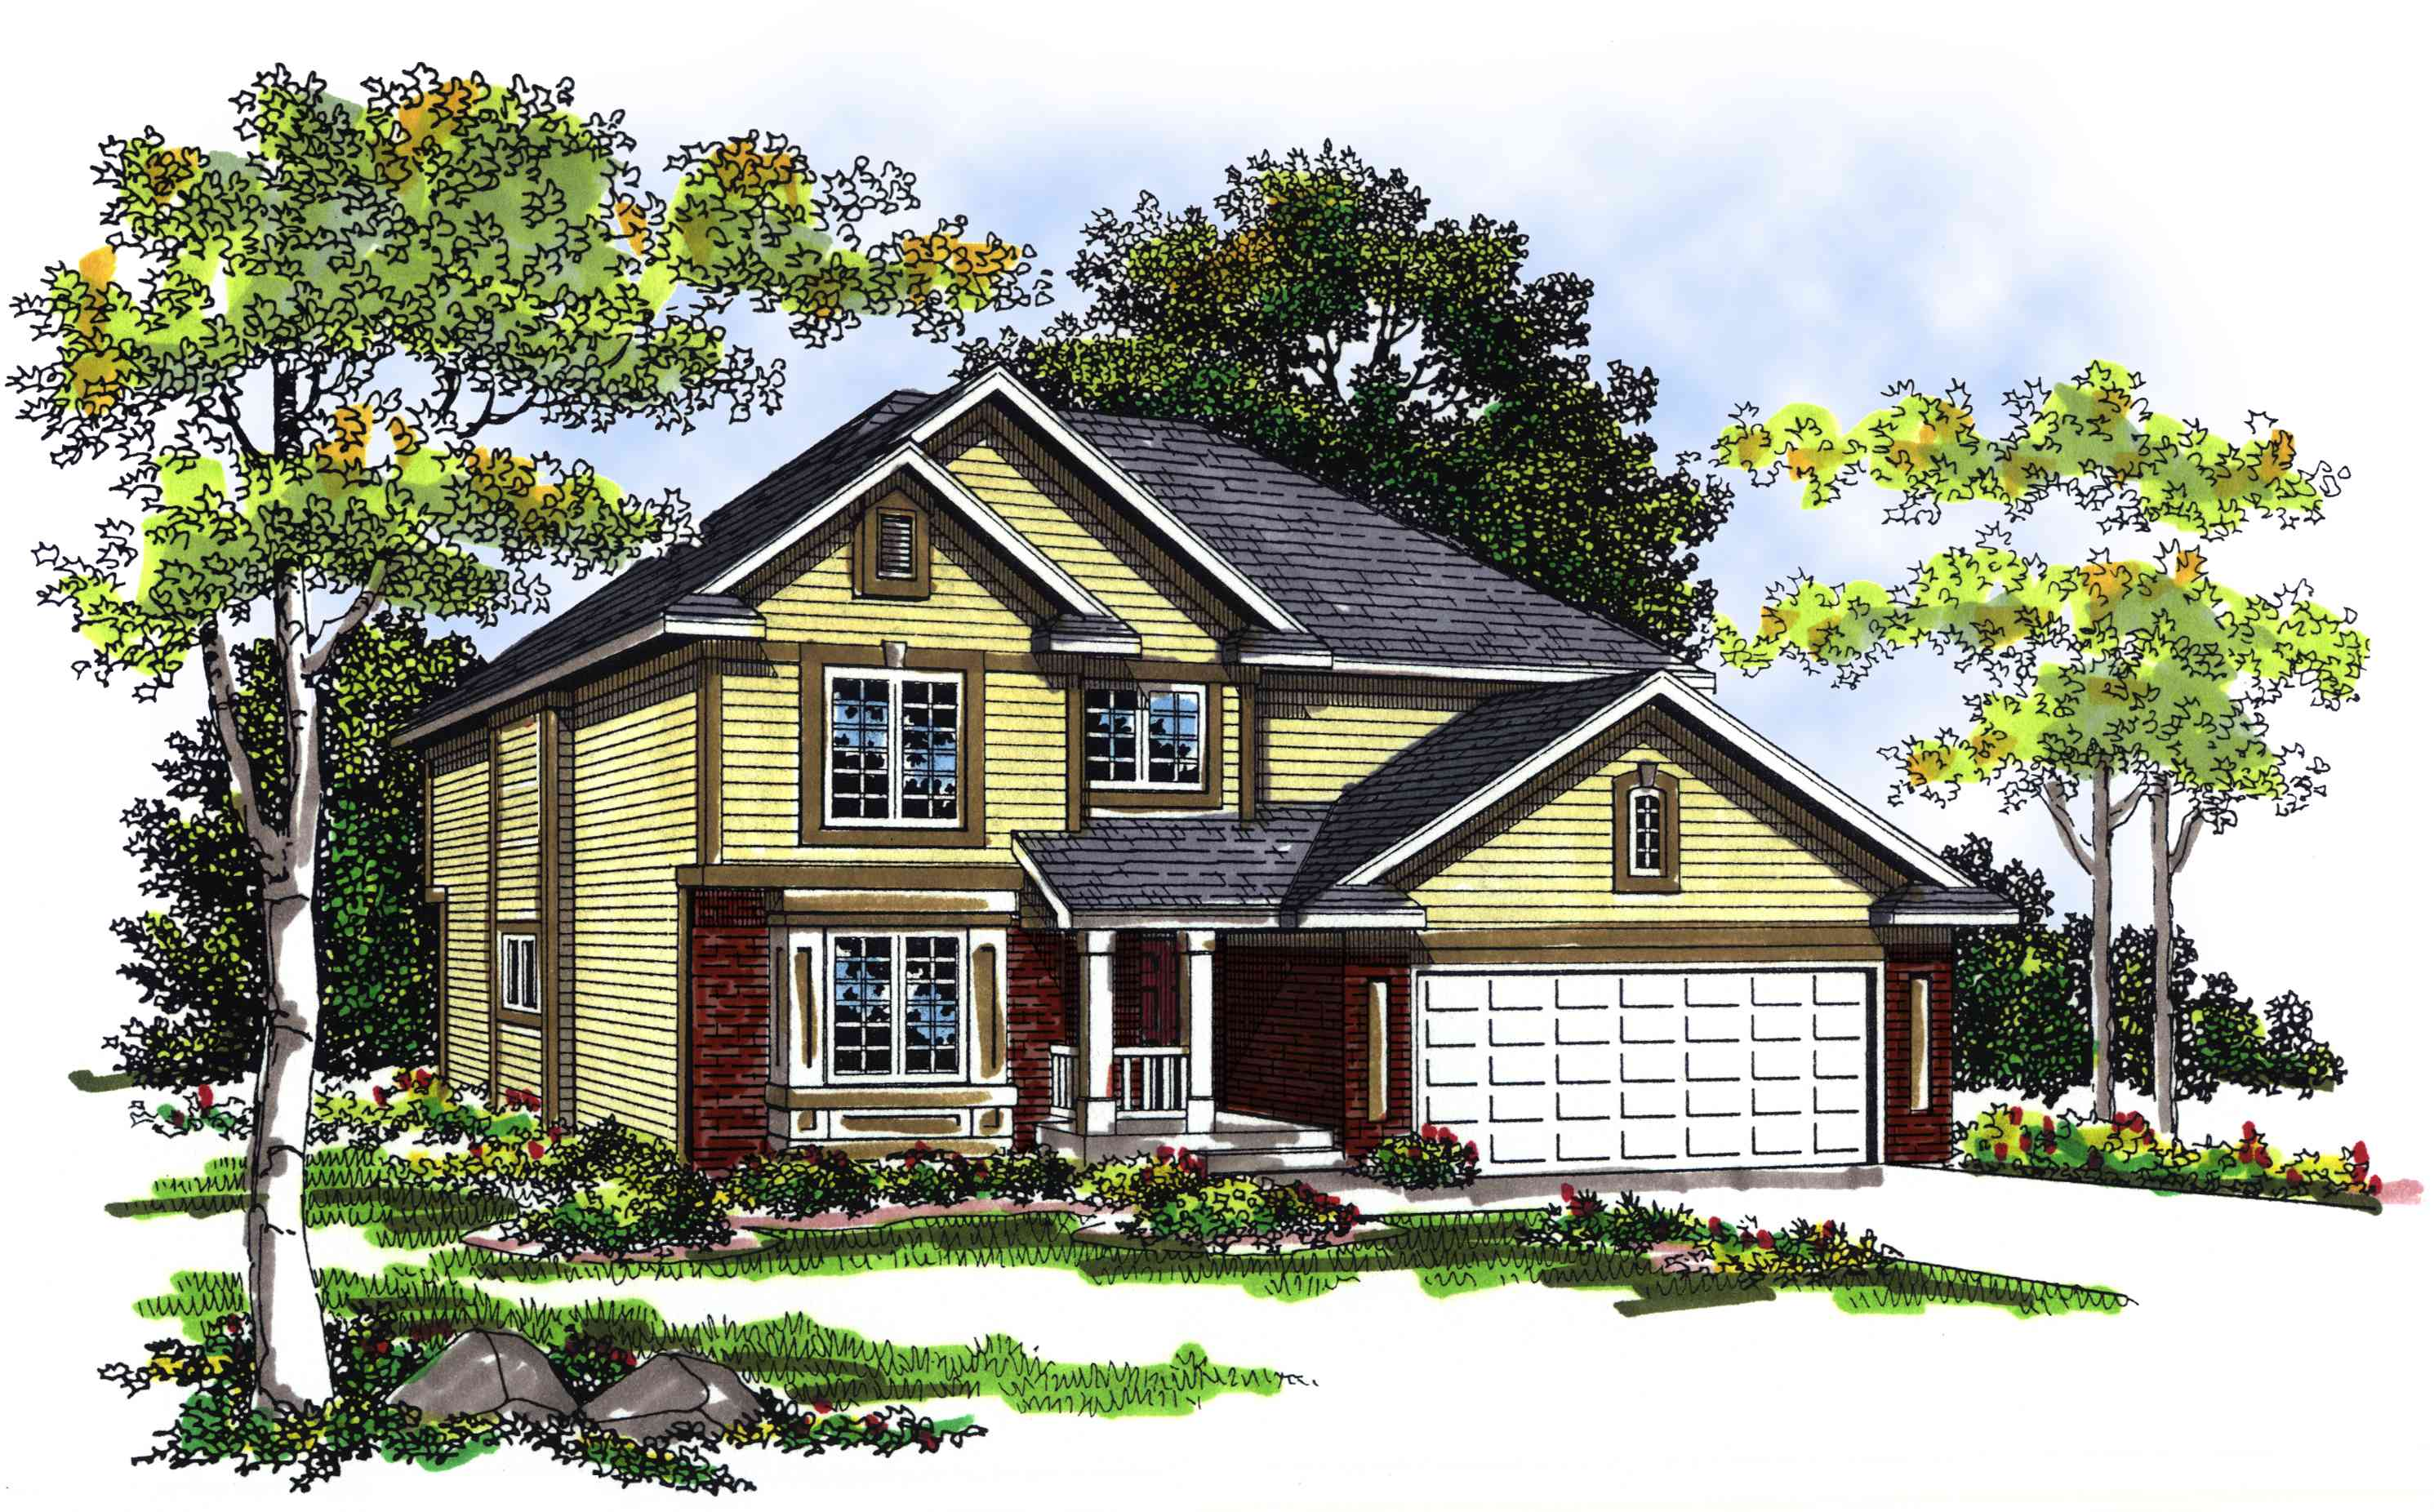 Cozy 4 bedroom 2 story house plan 89525ah for Cosy house plans